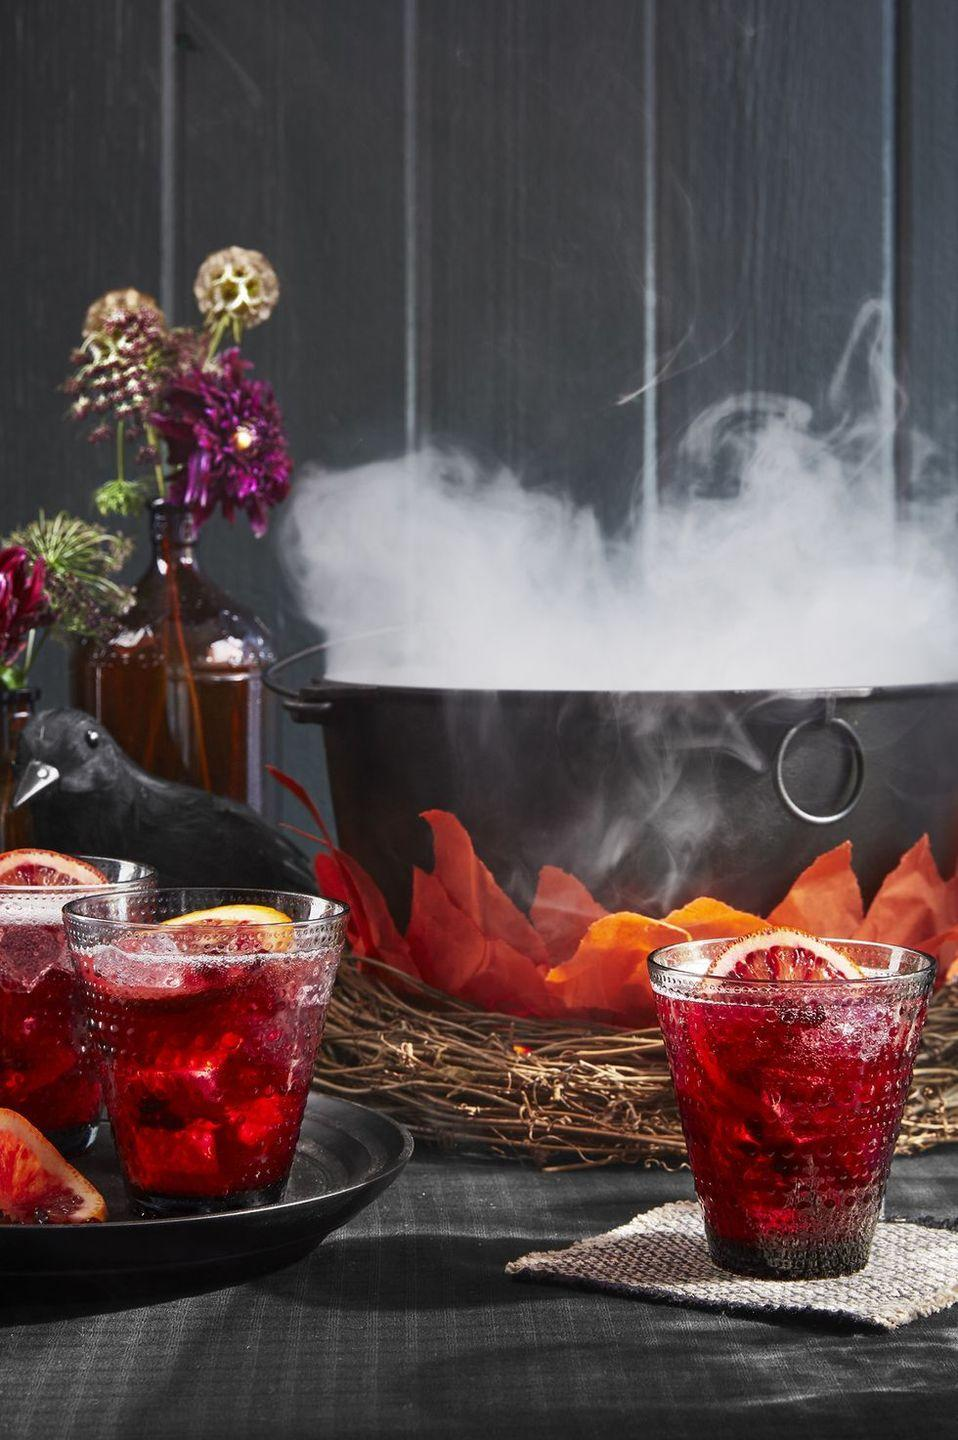 """<p>Serve your party punch in this as-real-as-it-gets cauldron. Stick the cauldron inside a grapevine wreath, and then dress the sides with paper flames. Throw some dry ice inside for a smokey effect, and then see how many people dare try what's inside.</p><p><a class=""""link rapid-noclick-resp"""" href=""""https://www.amazon.com/GIFTEXPRESS-Black-Cauldron-MADE-USA/dp/B01256VXNO/?tag=syn-yahoo-20&ascsubtag=%5Bartid%7C10055.g.421%5Bsrc%7Cyahoo-us"""" rel=""""nofollow noopener"""" target=""""_blank"""" data-ylk=""""slk:SHOP CAULDRONS"""">SHOP CAULDRONS</a></p>"""